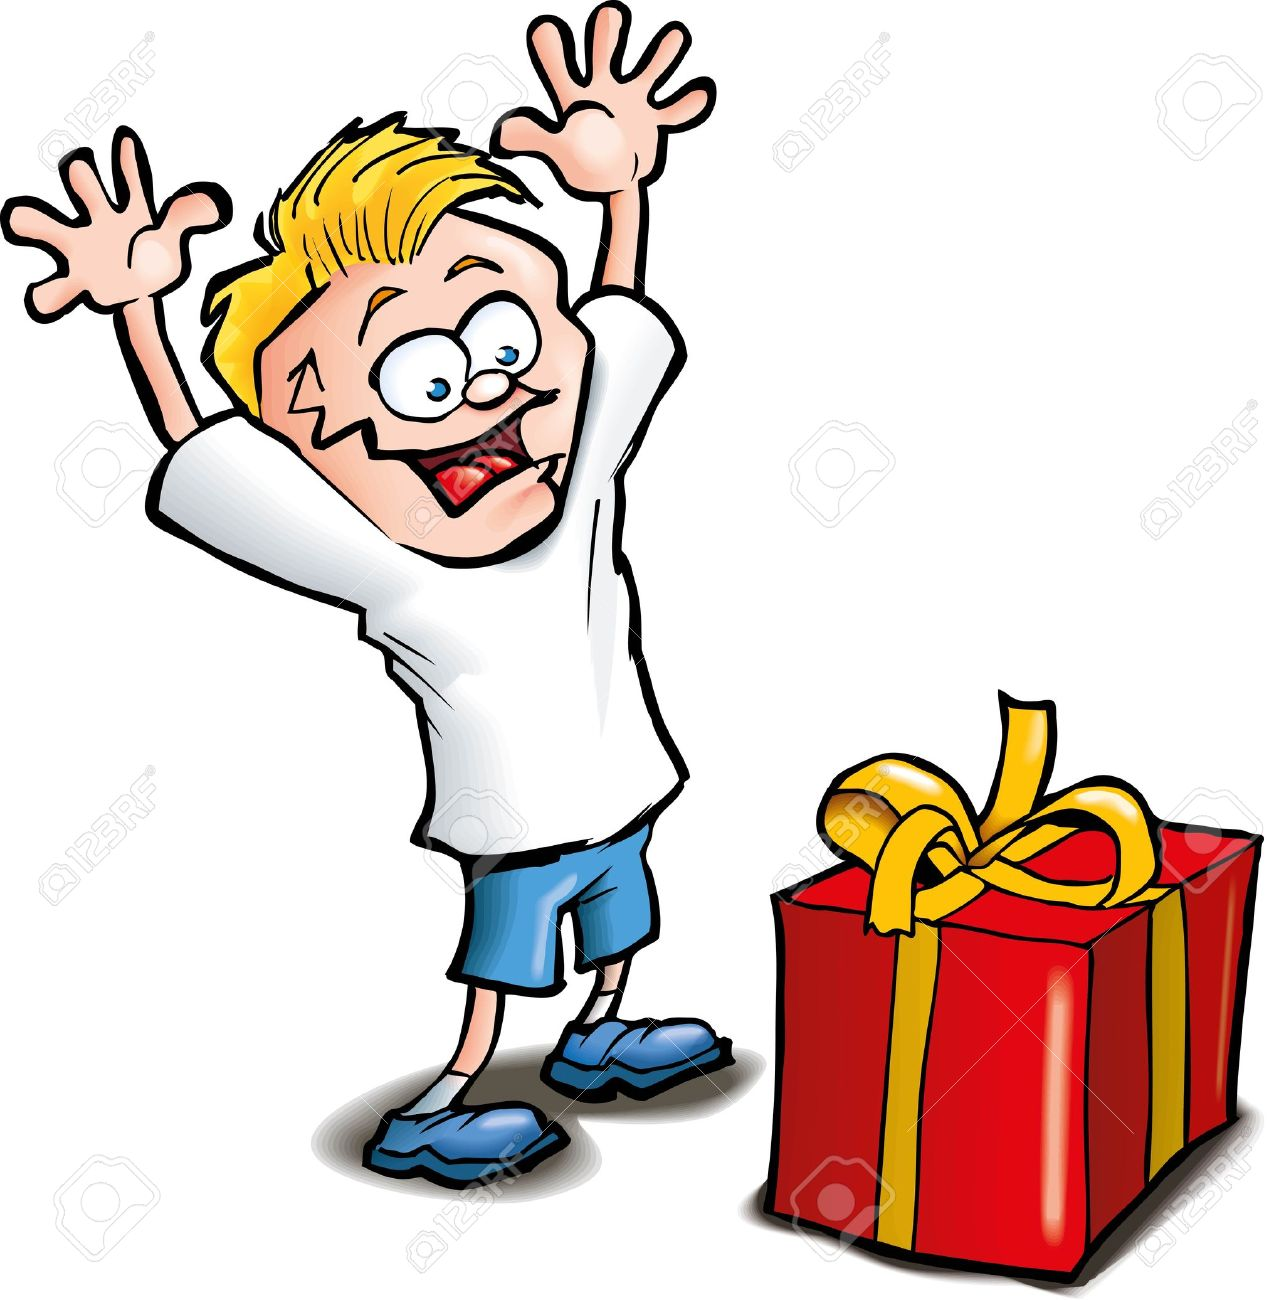 Excitement clipart 5 » Clipart Station.